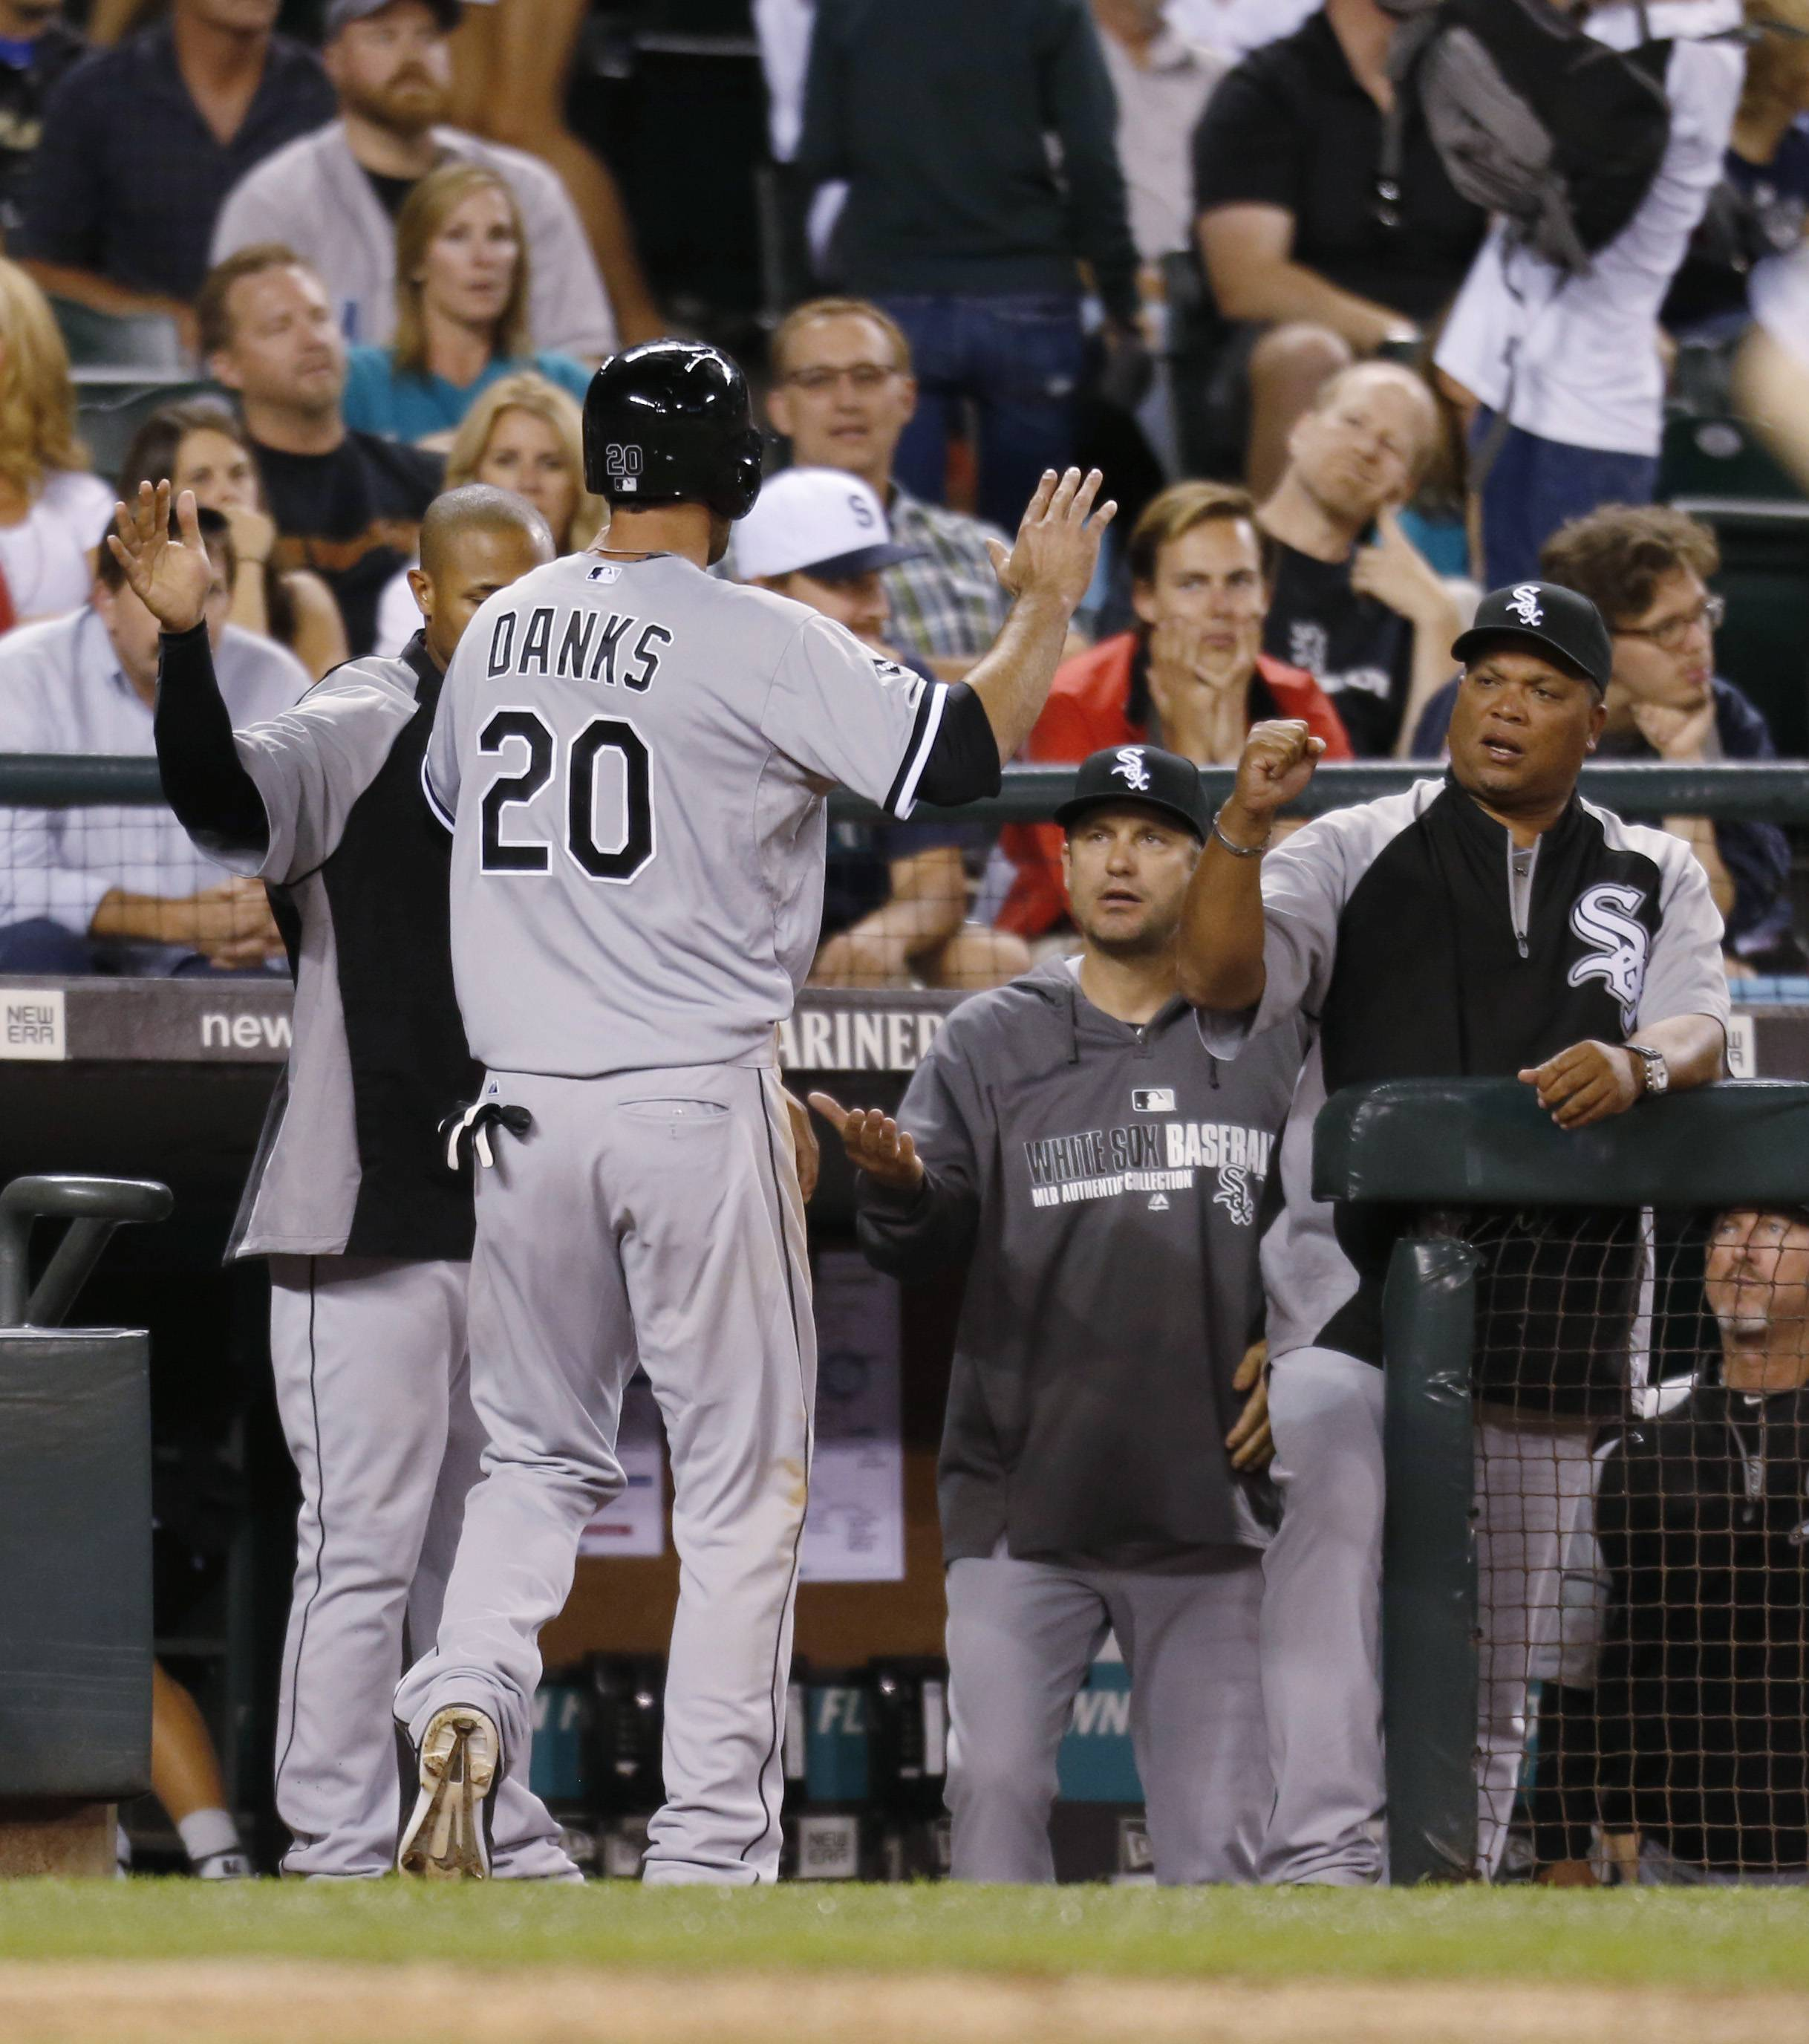 The White Sox's Jordan Danks is greeted at the dugout after scoring against the Seattle Mariners during the 10th inning of a baseball game in Seattle on Saturday, Aug. 9, 2014. The White Sox won 2-1.